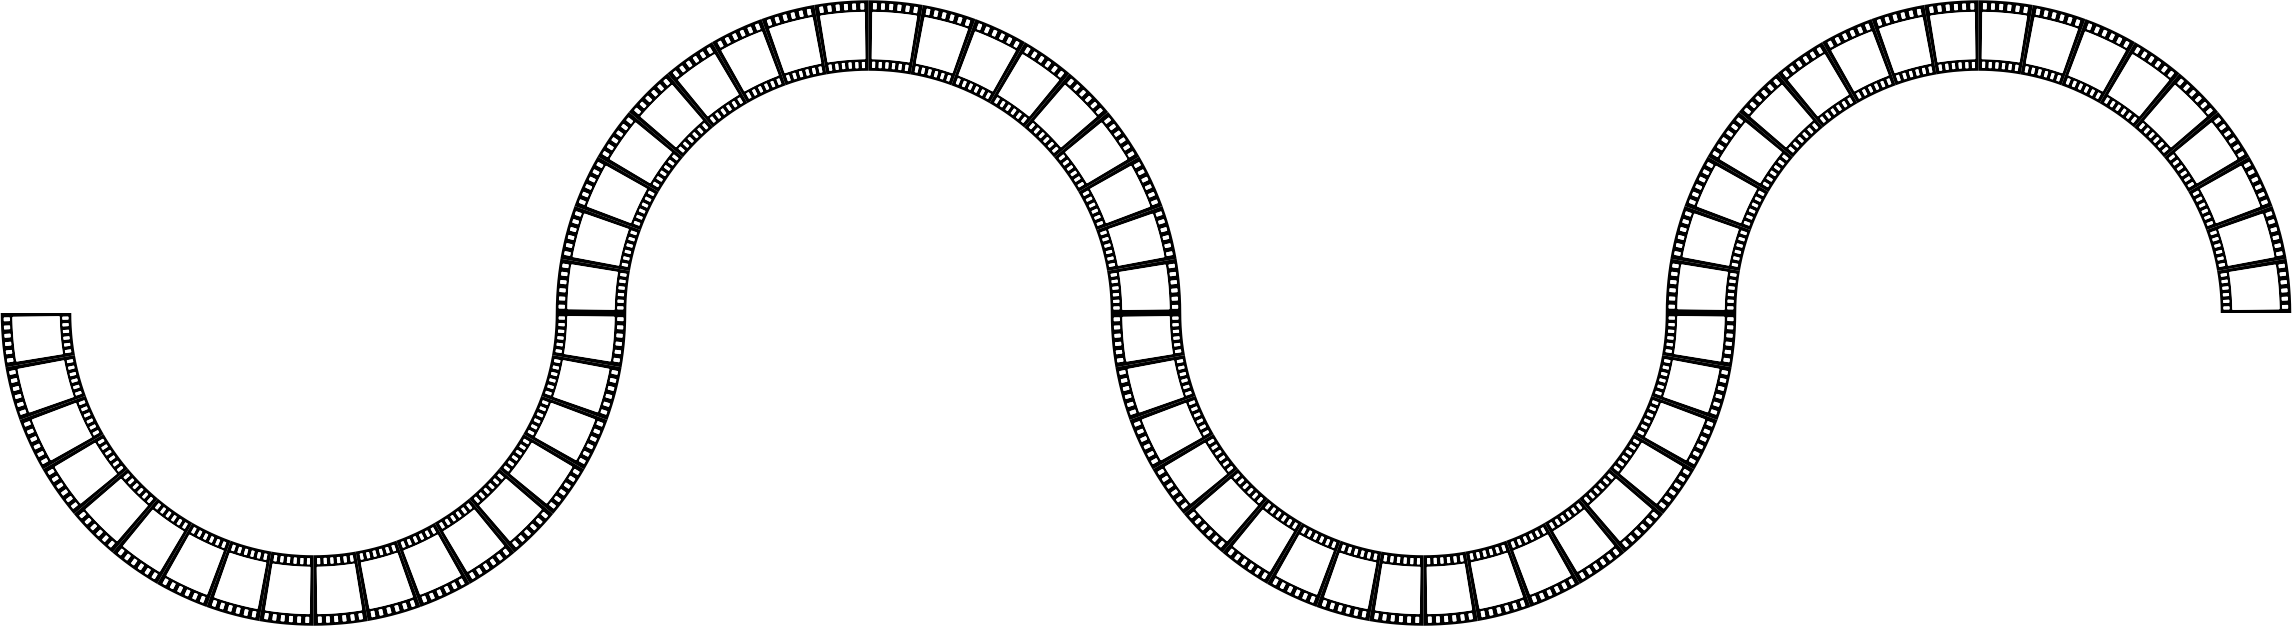 Film strip icons png. Worm clipart black and white